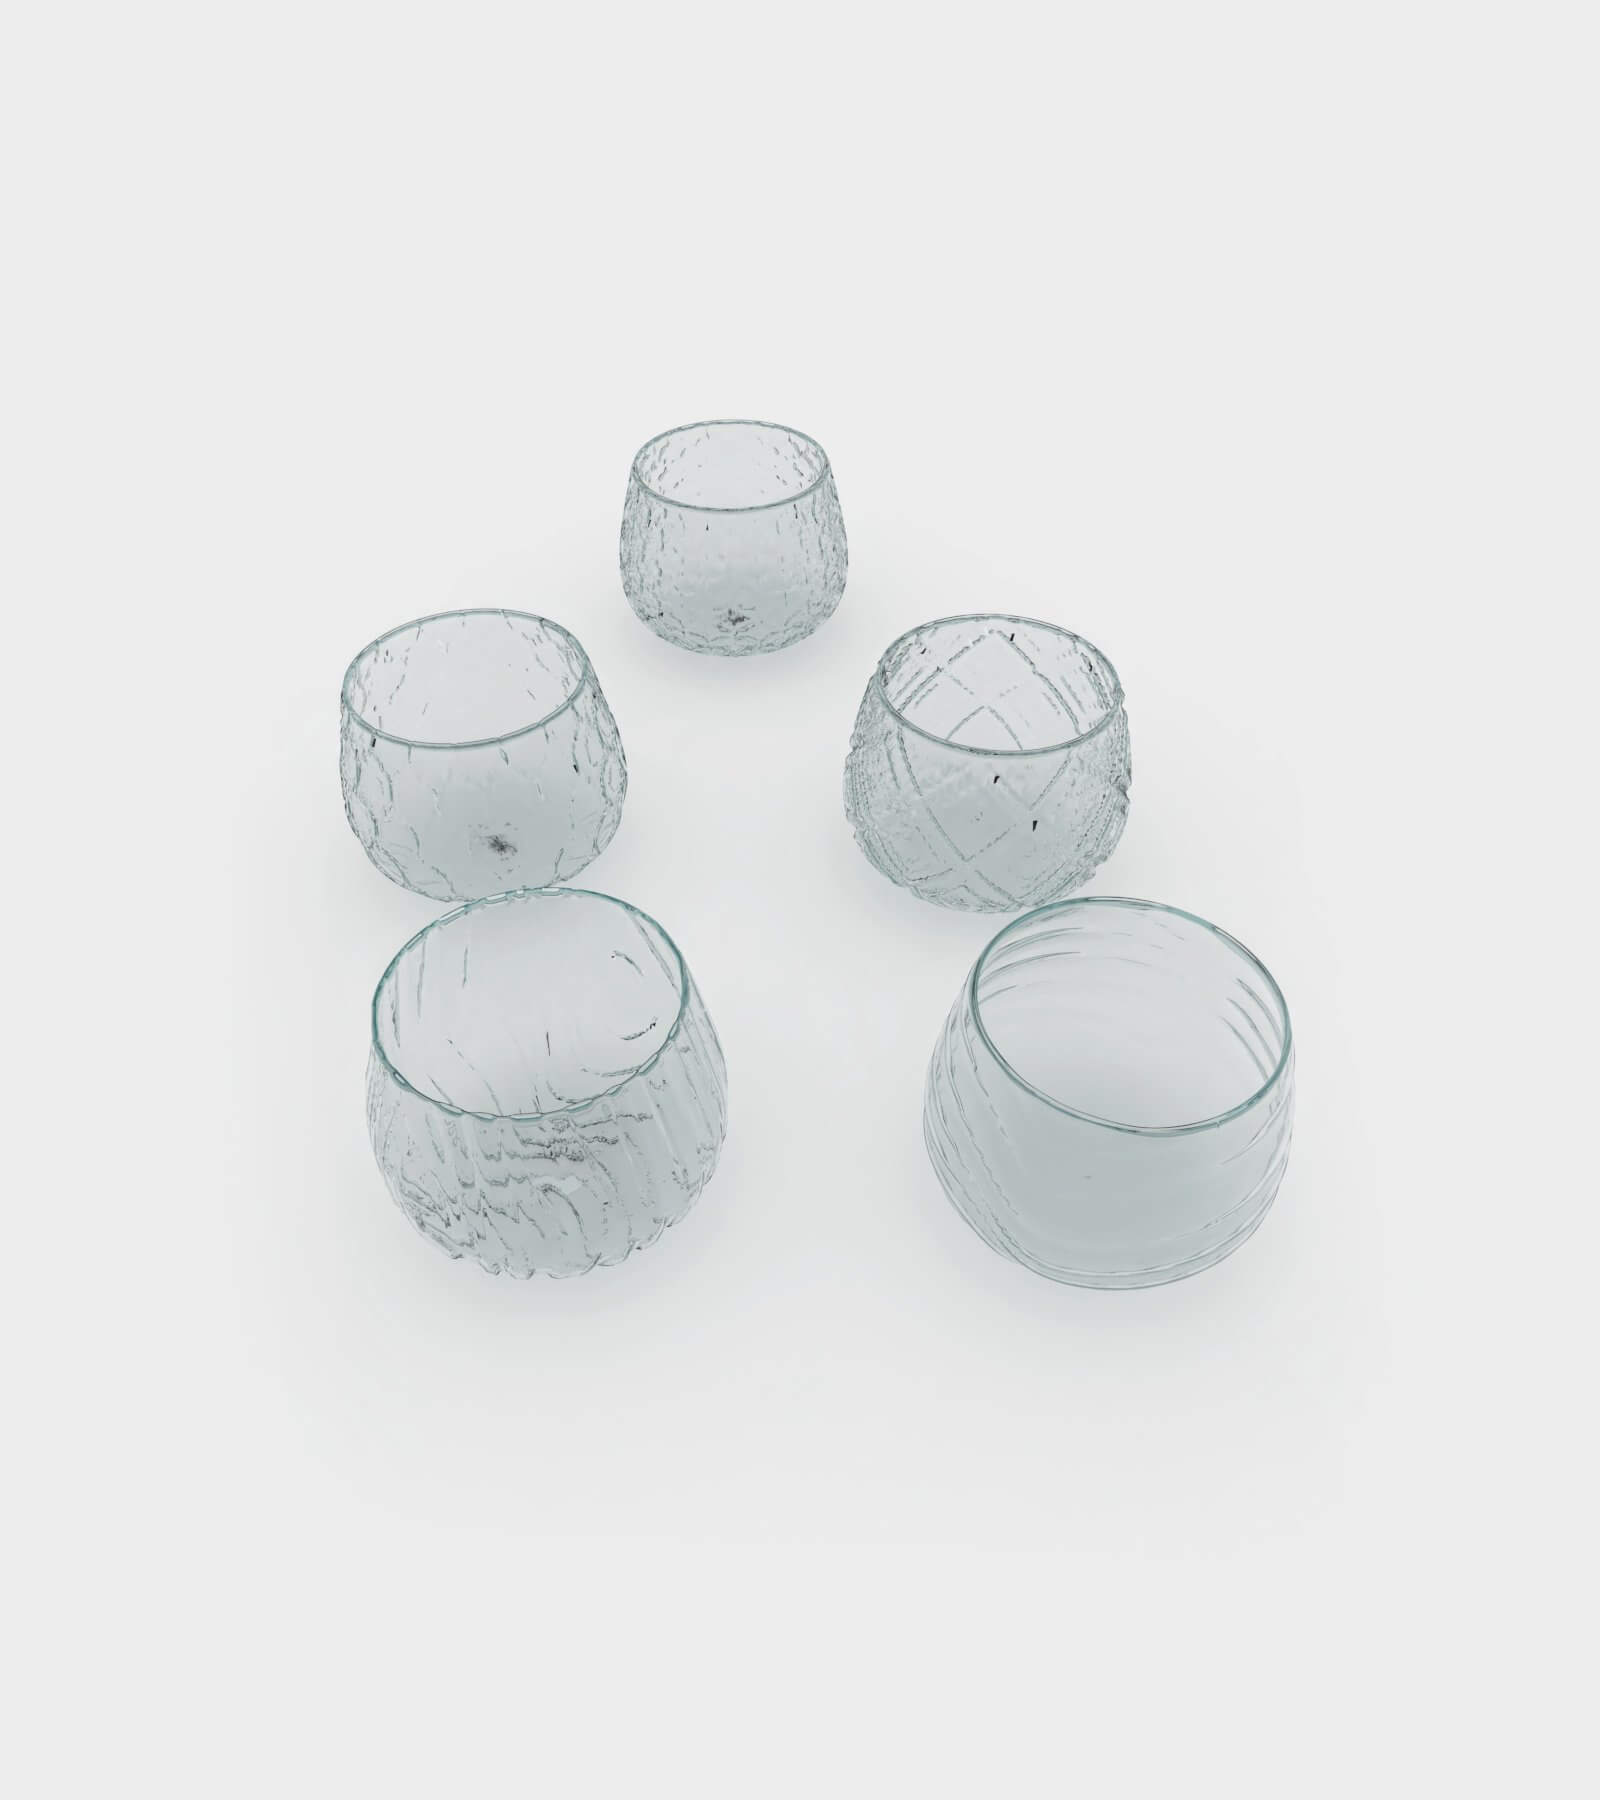 Different water and wine glasses with patterns 2 - 3D Model